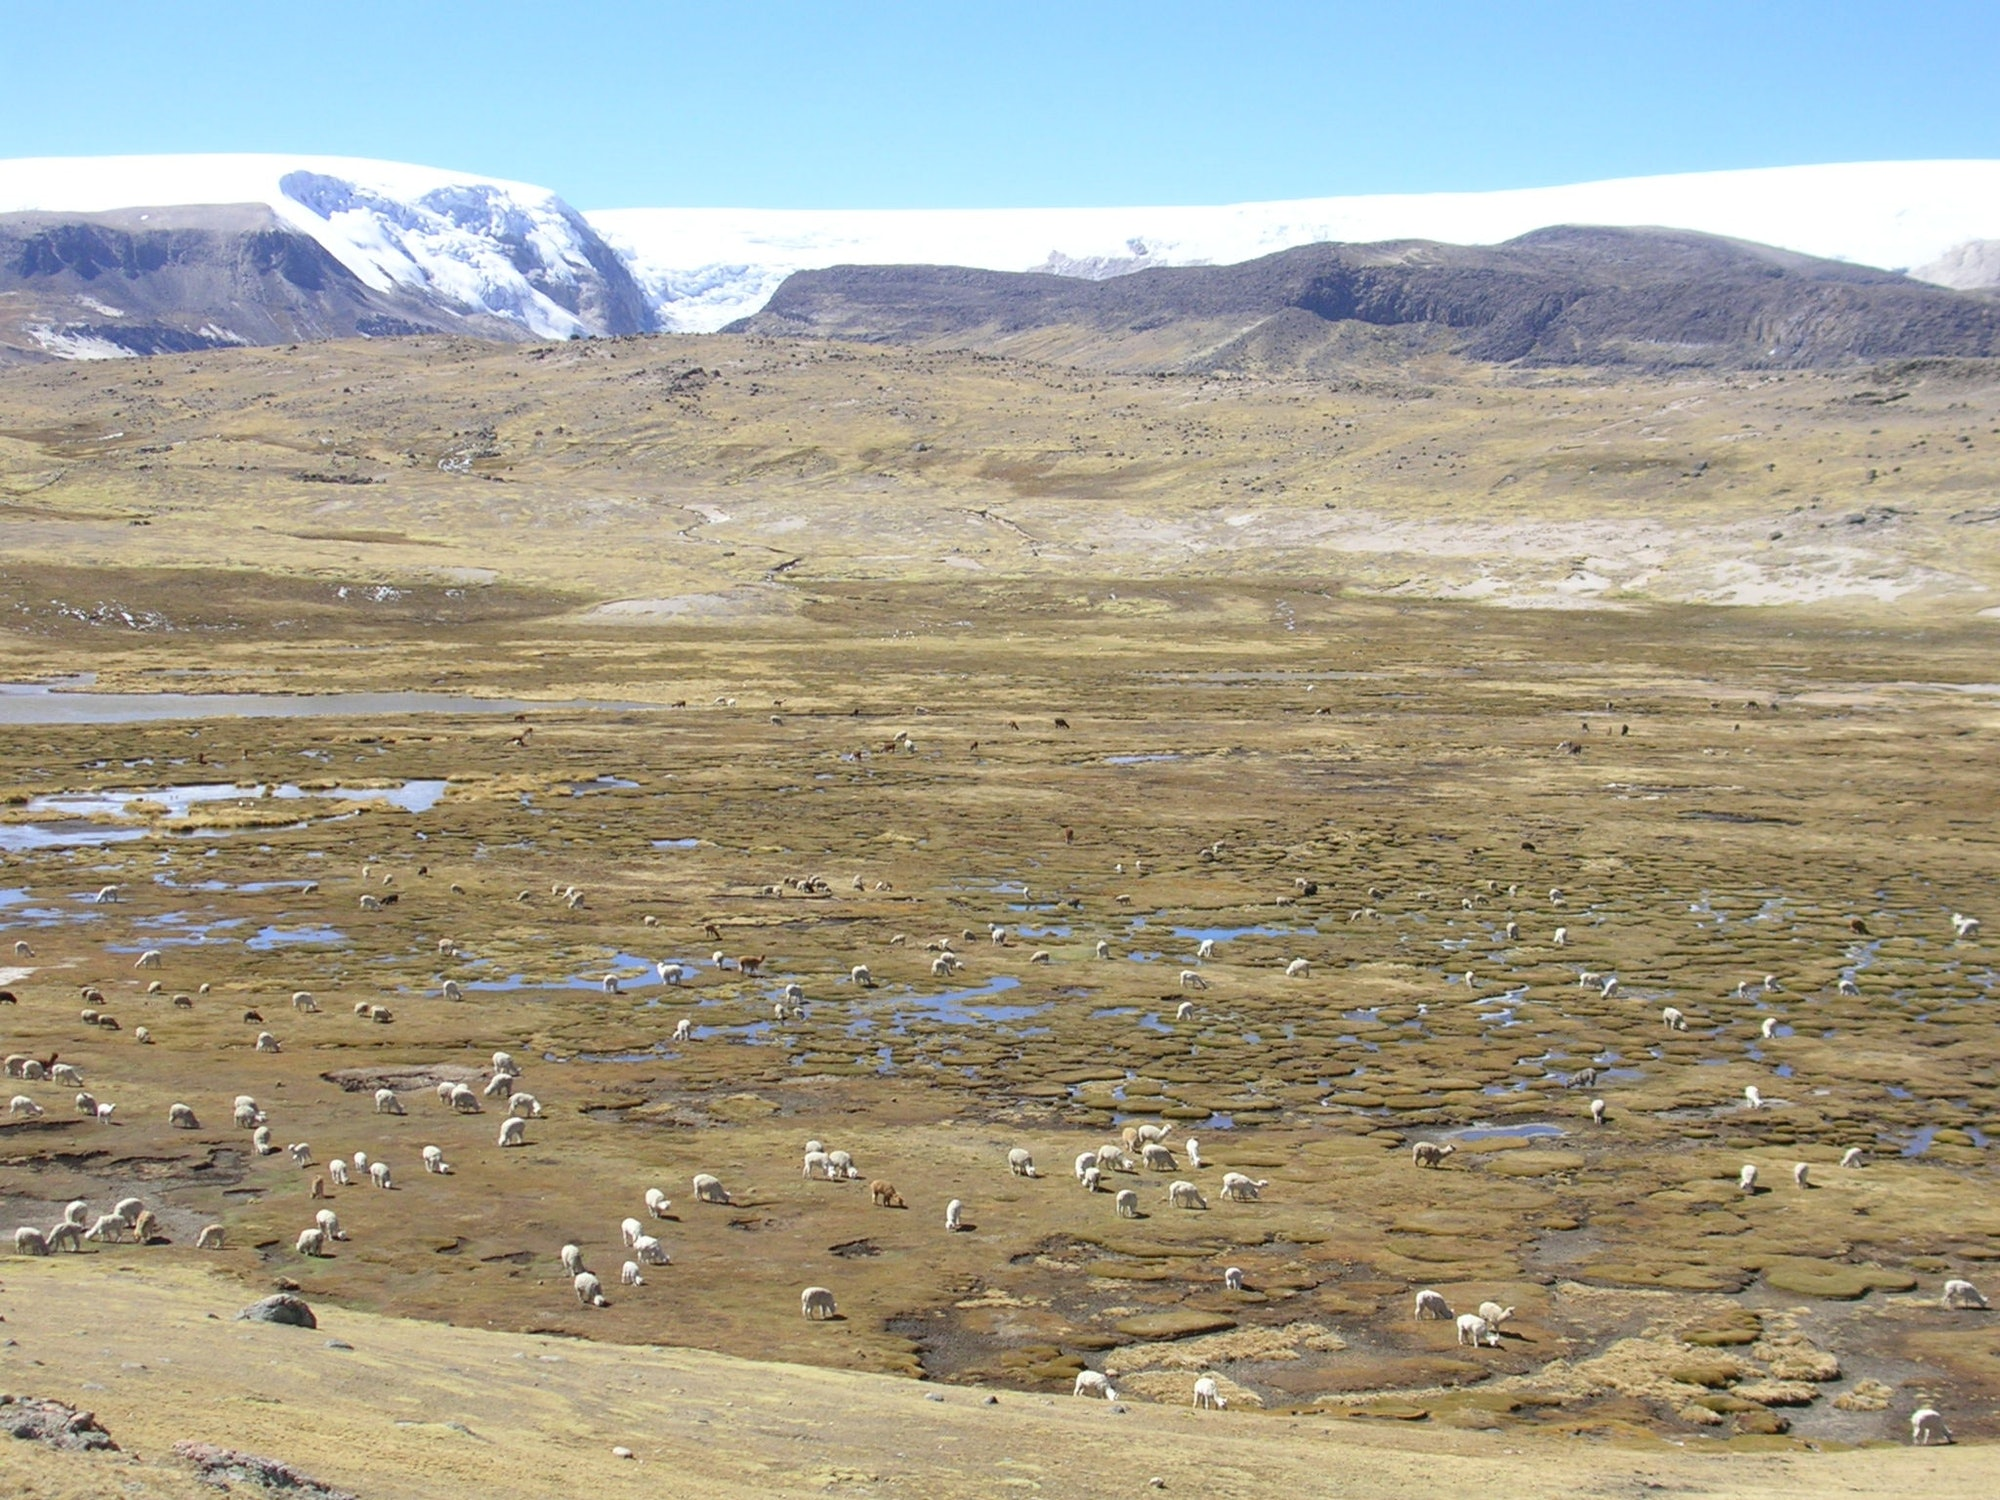 Llamas and alpacas grazing on wetlands maintained by Quelccaya ice cap melt water.